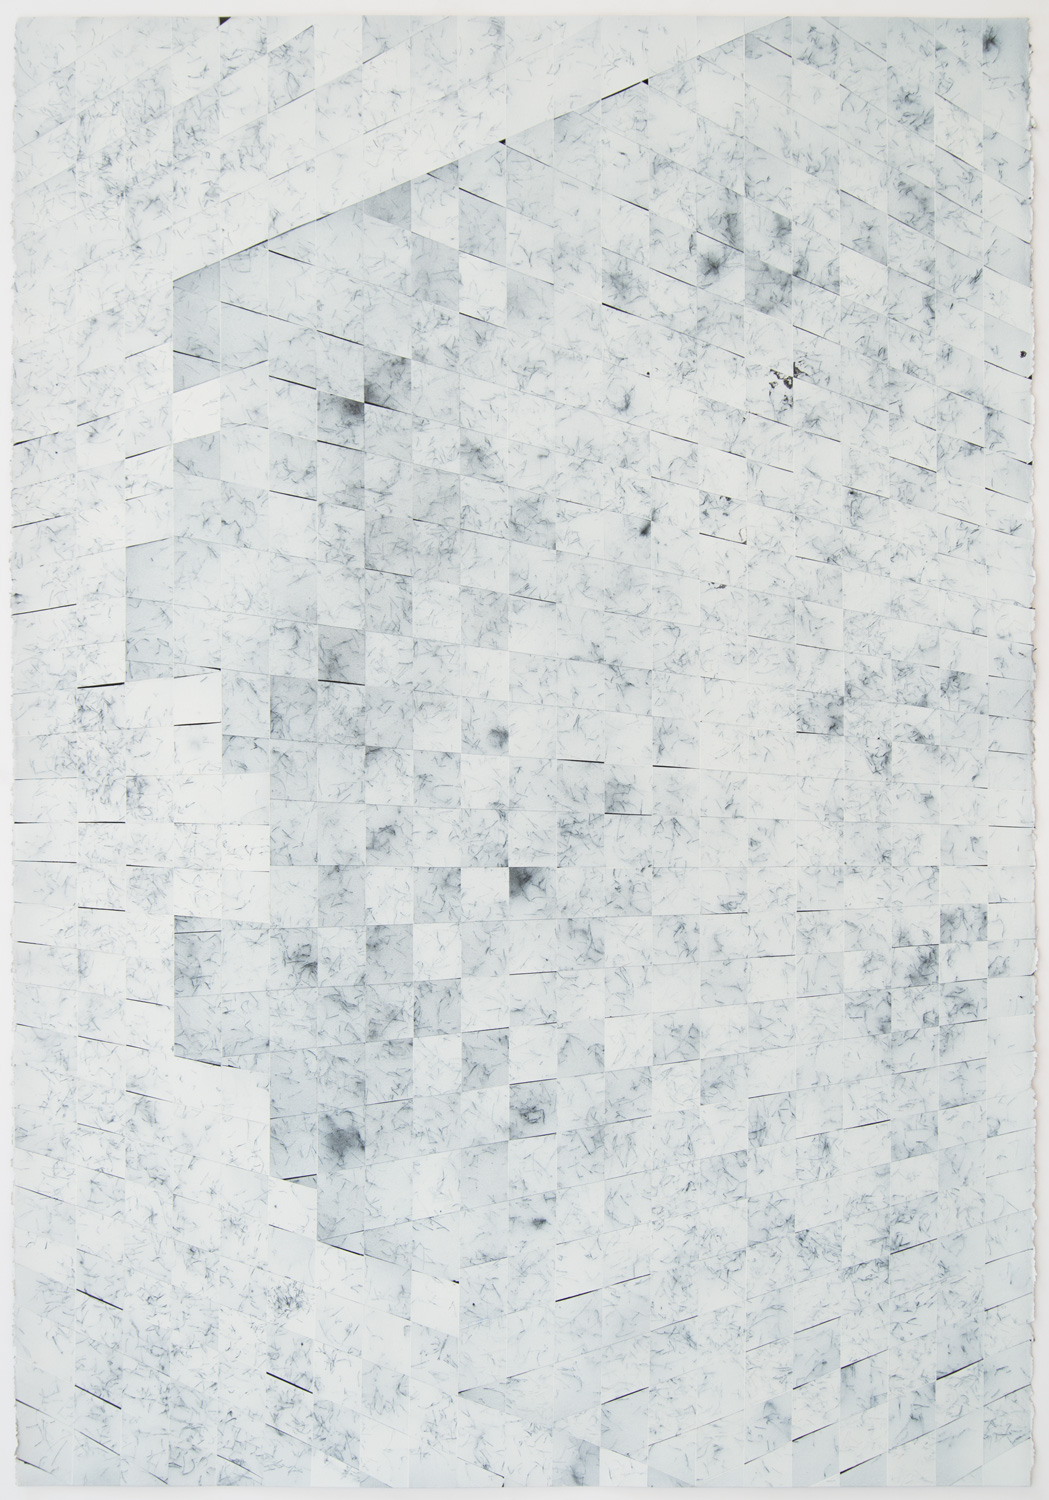 Danny Jauregui   MisRemembered Structure #14  (2015) Acrylic, enamel, and human hair on paper, 30 x 44in.